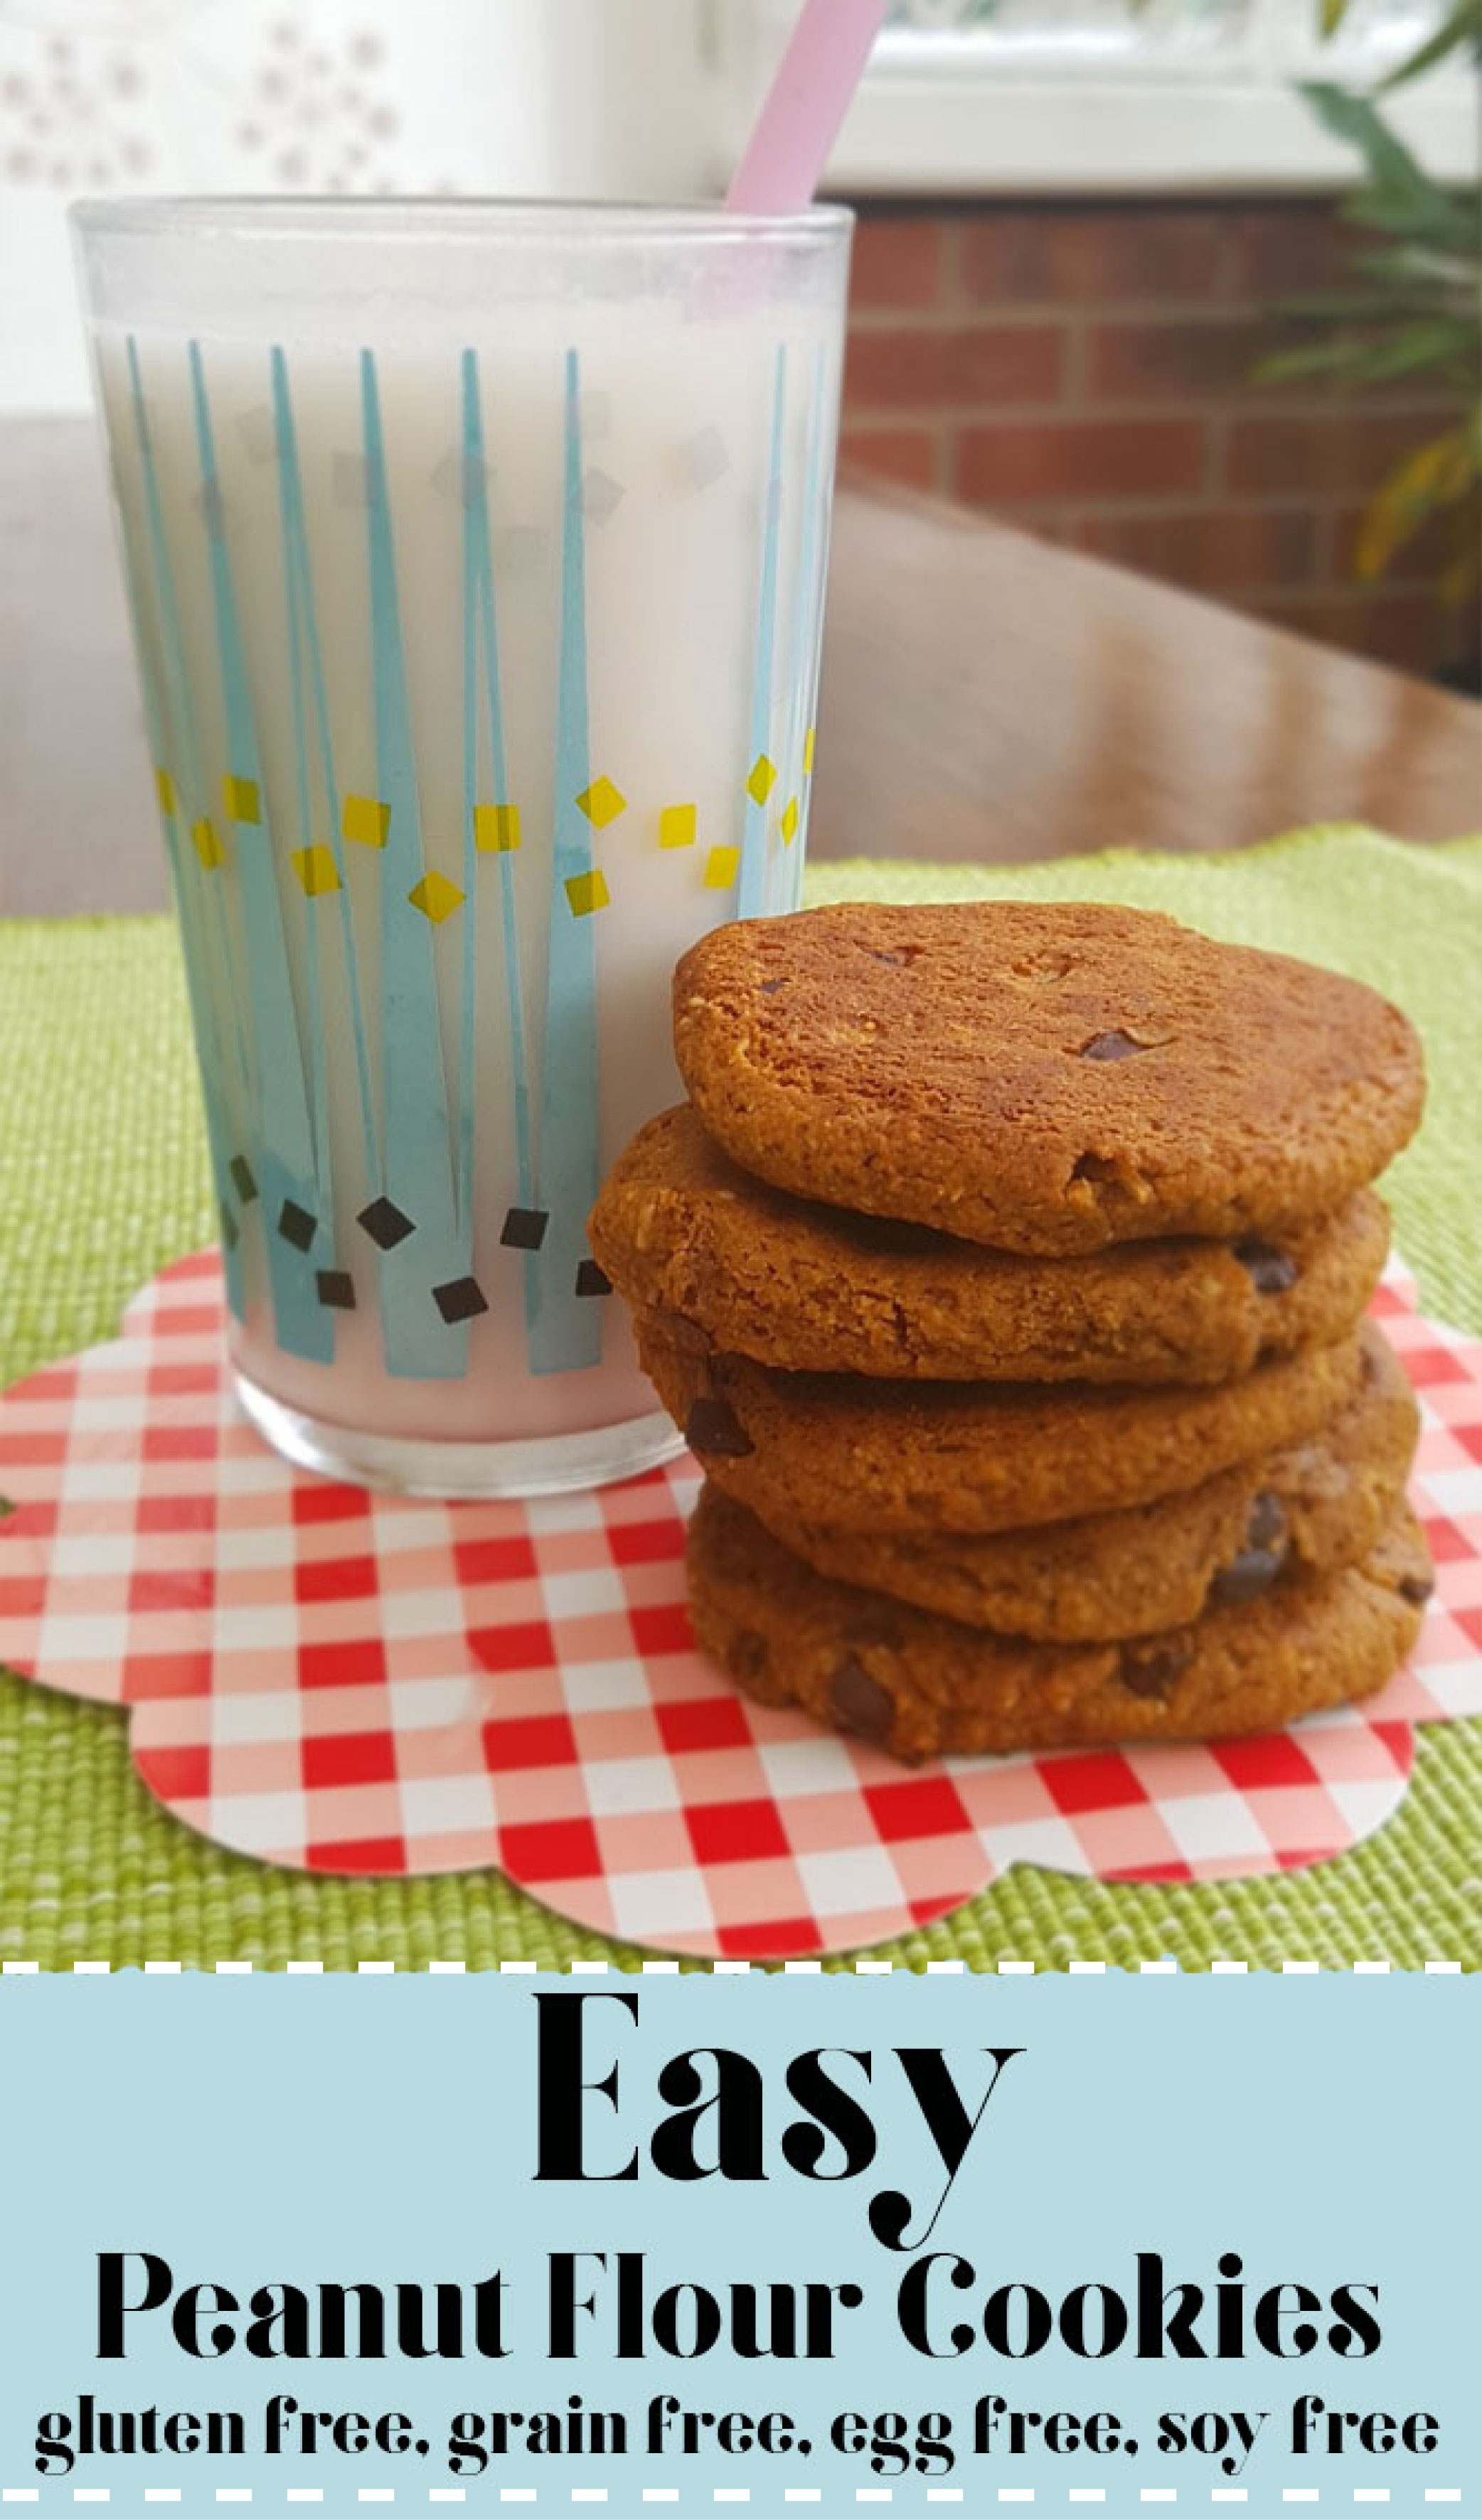 Gluten free peanut flour chocolate chip cookies